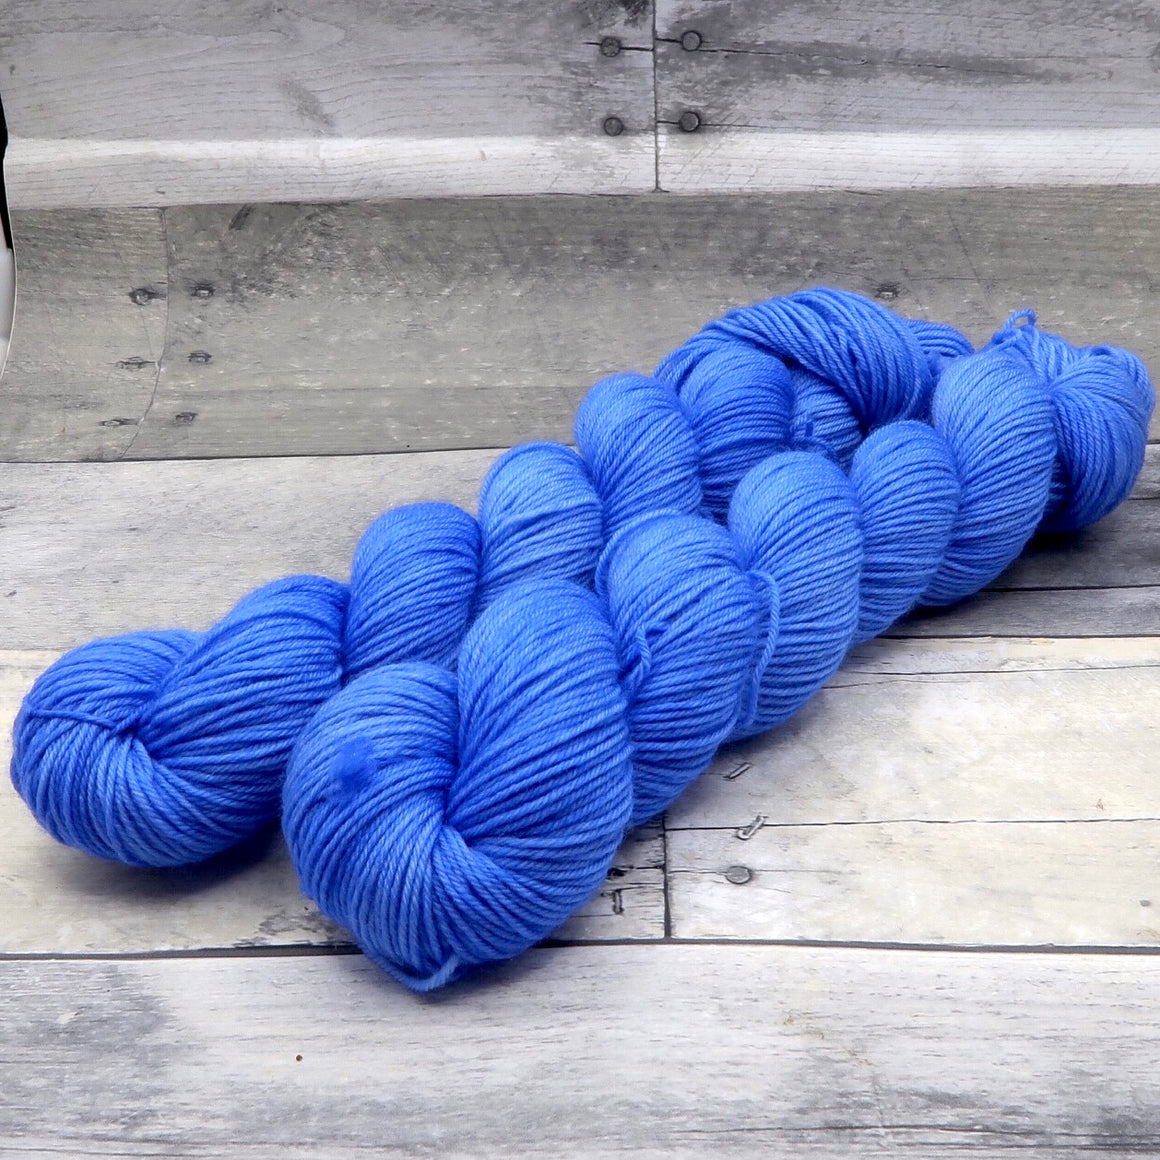 Alpine - 50g - Tonal Yarn (Everyday Sock)